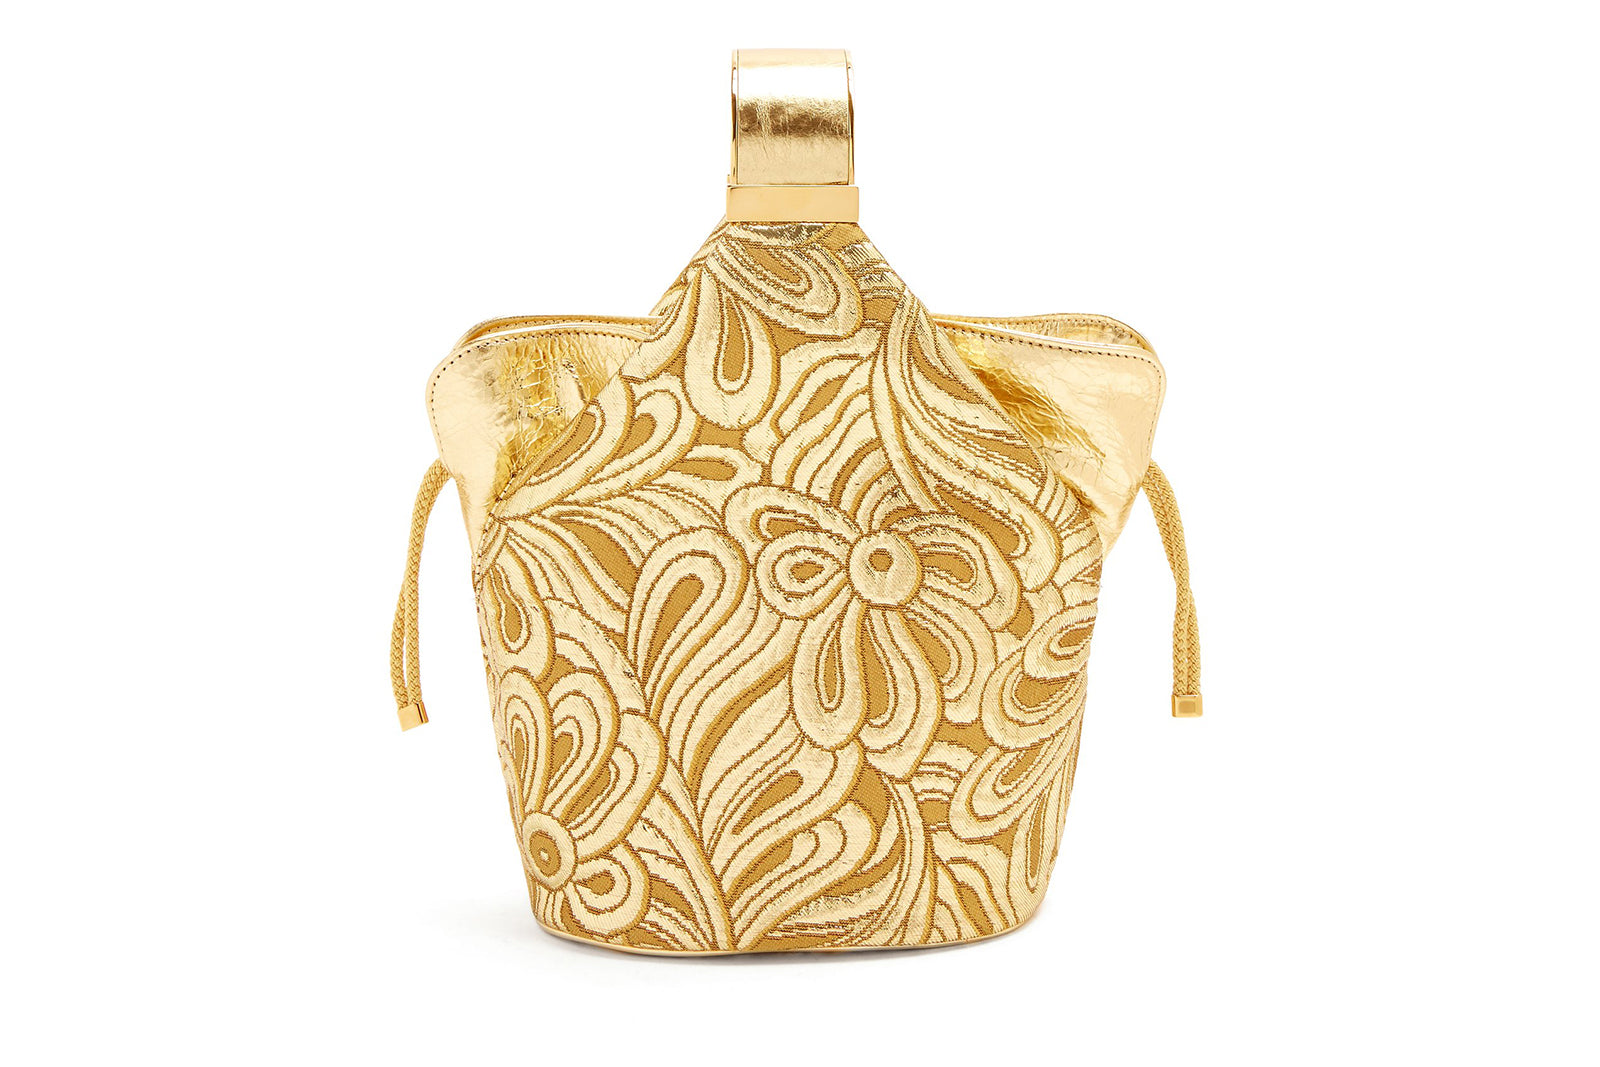 Kit Bracelet Bag in Metallic Gold Brocade with 24K Gold Dipped Hardware